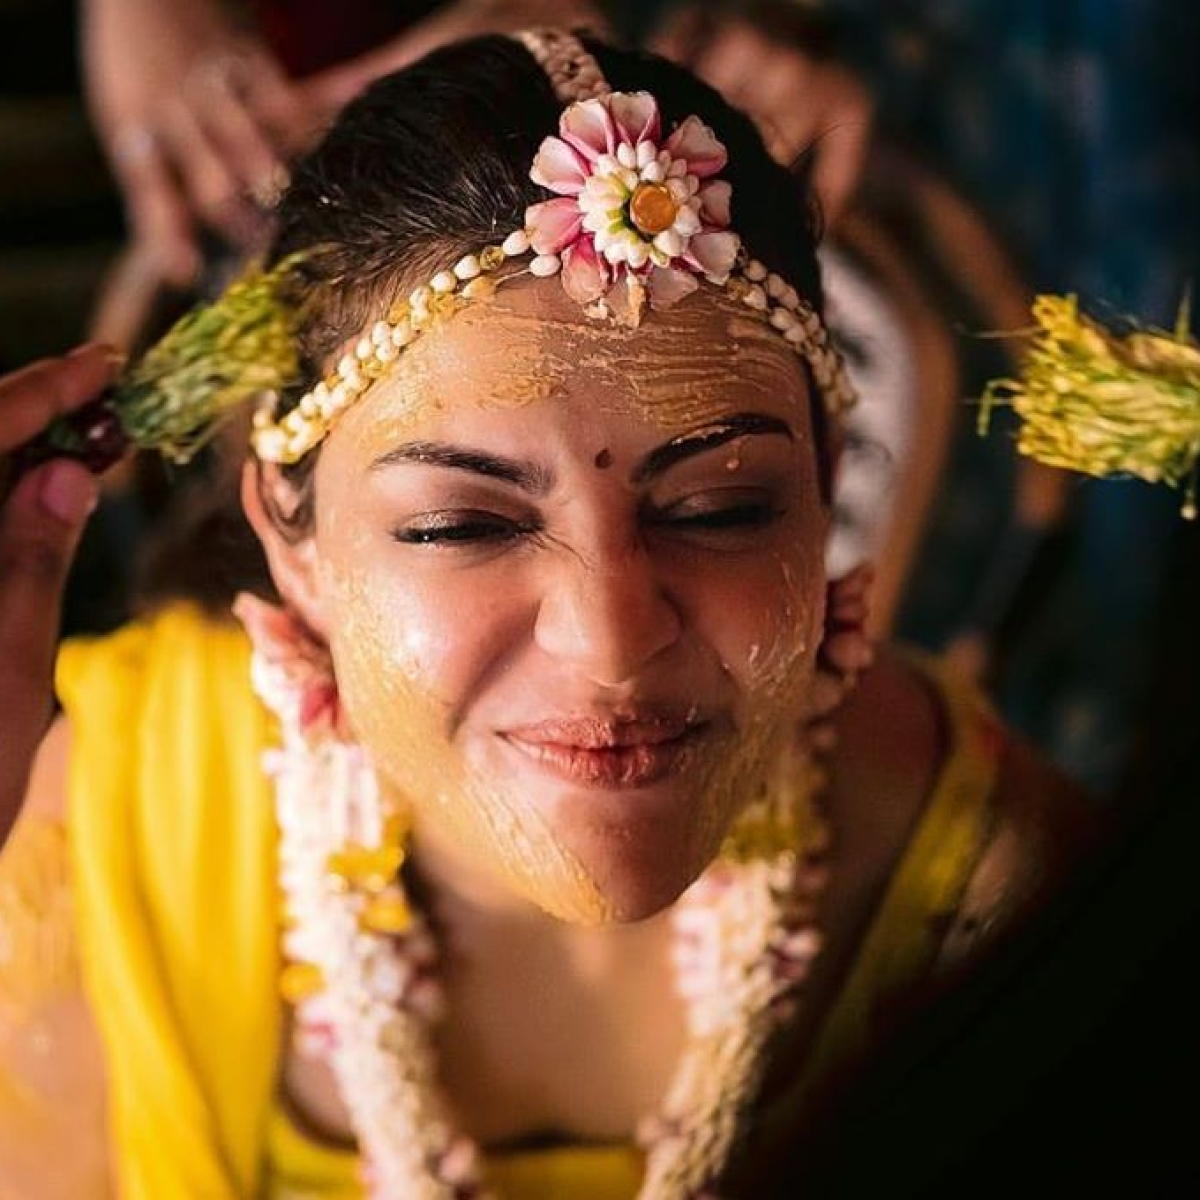 Kajal Aggarwal shares some quirky stills from her Haldi Ceremony